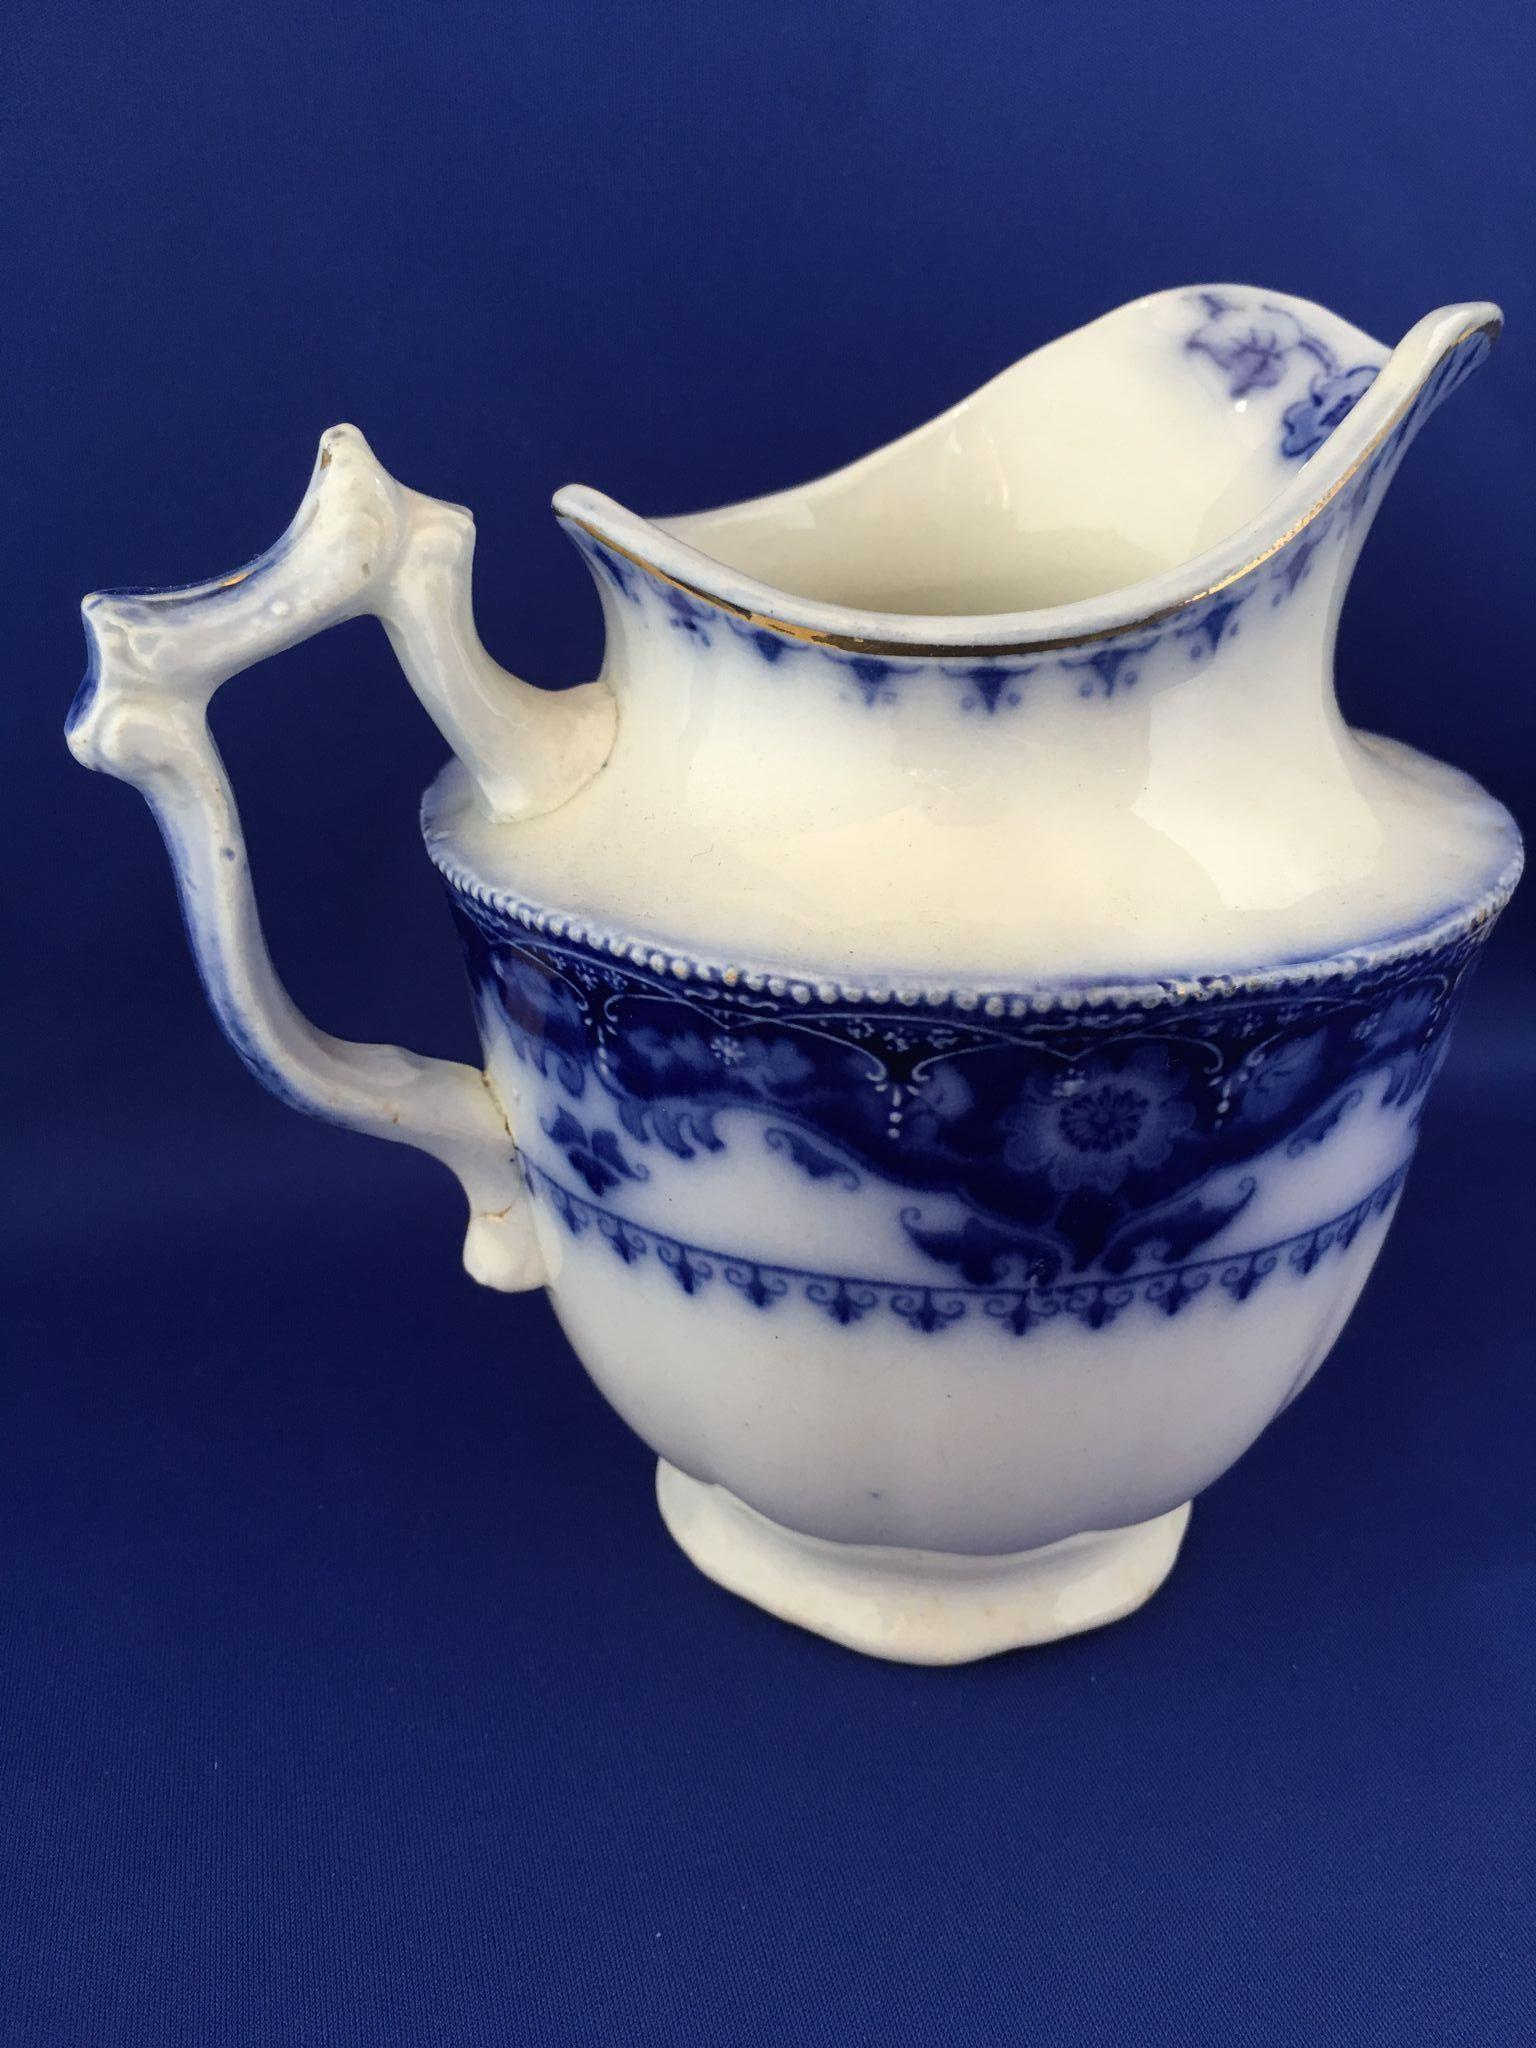 St Louis Taxi >> Flow blue Crumlin Jug pitcher creamer by Myott from ...